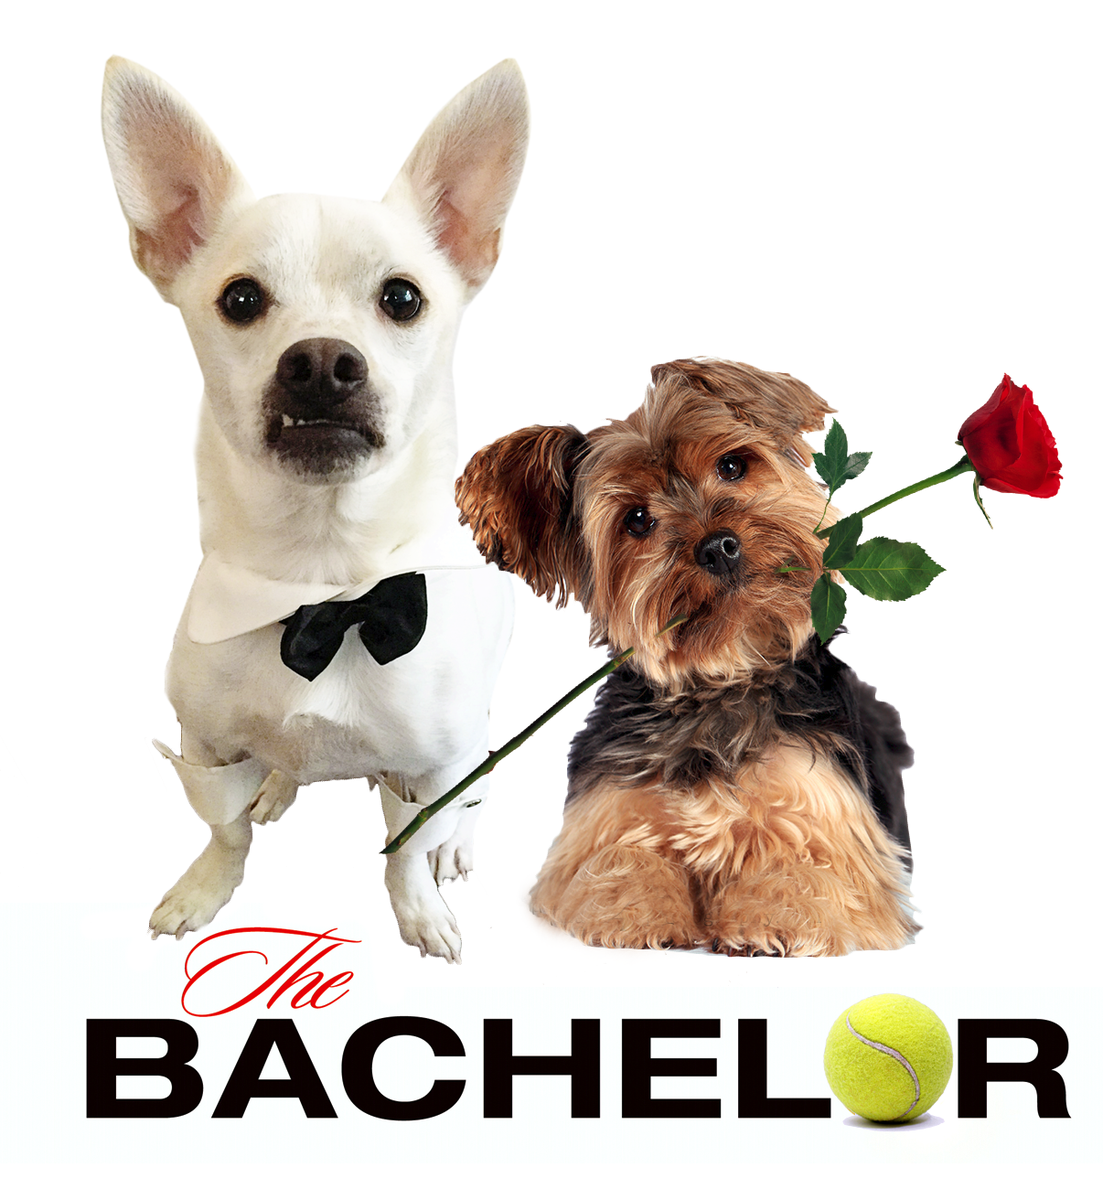 Most dramatic #RoseCeremony ever, and she accepted my rose! #TheBachelor #TheBachelorFinale #dogsoftwitter #adoption http://t.co/LsIZ7qqwqk